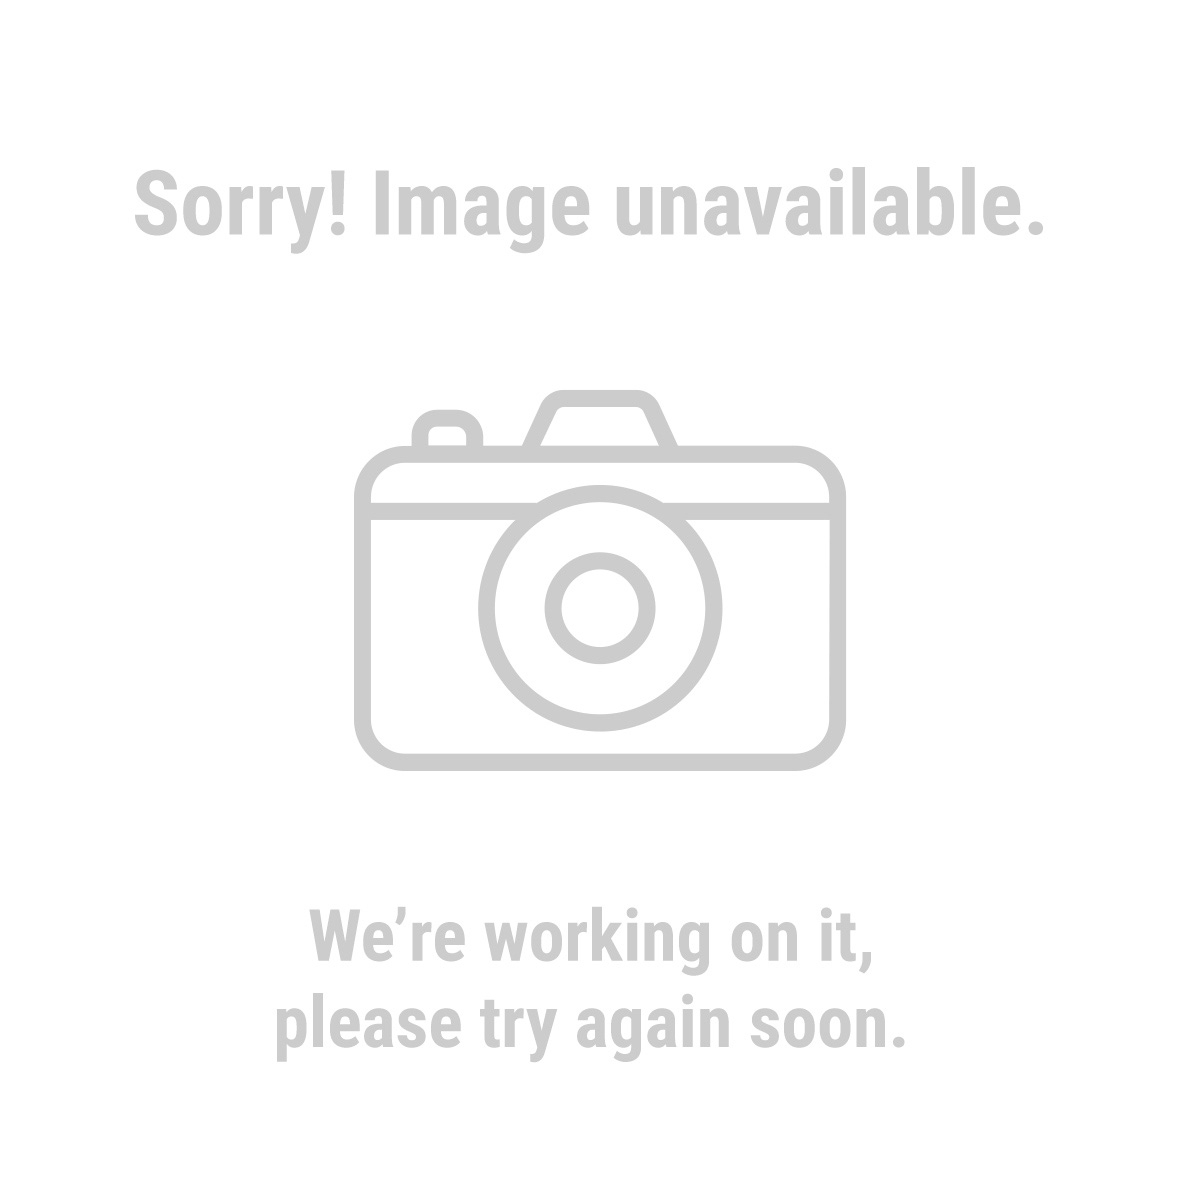 Smith + Jones 67839 1/2 HP General Purpose Electric Motor